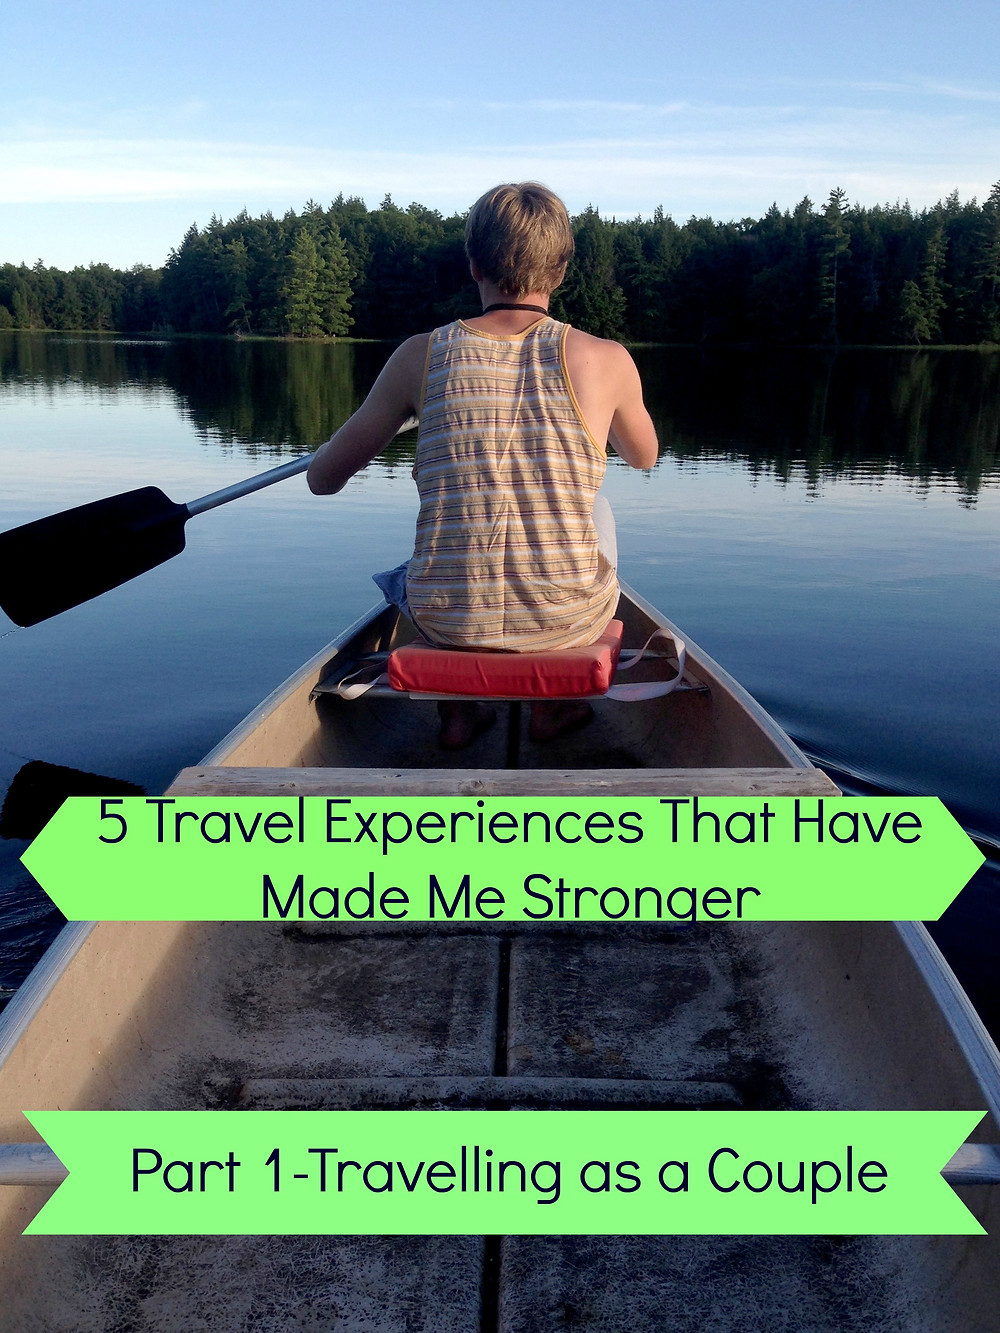 5 travel experiences that have made me stronger